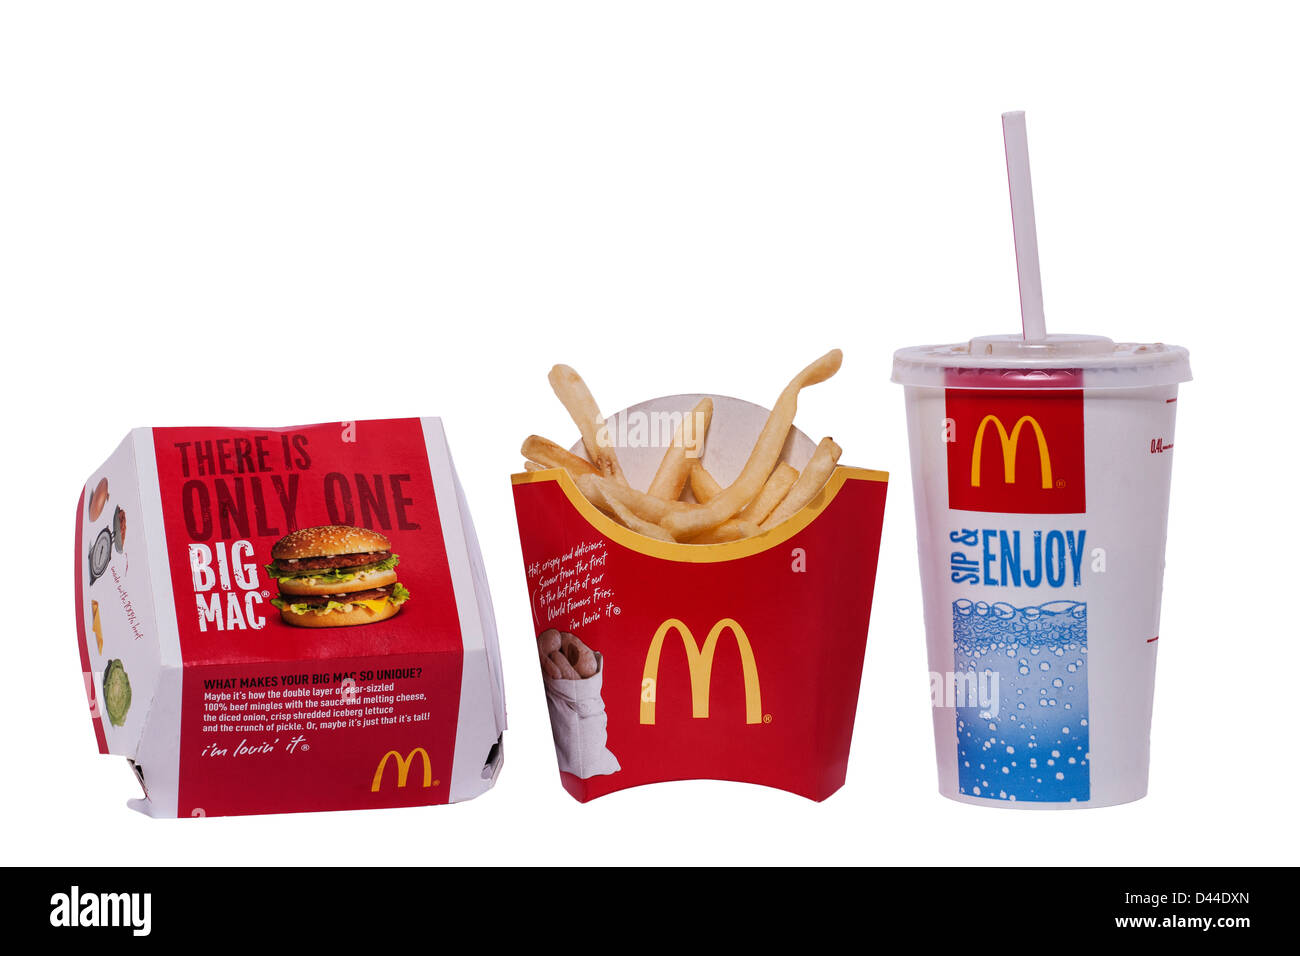 A Mcdonalds Big Mac meal with burger , fries and drink on a white background - Stock Image